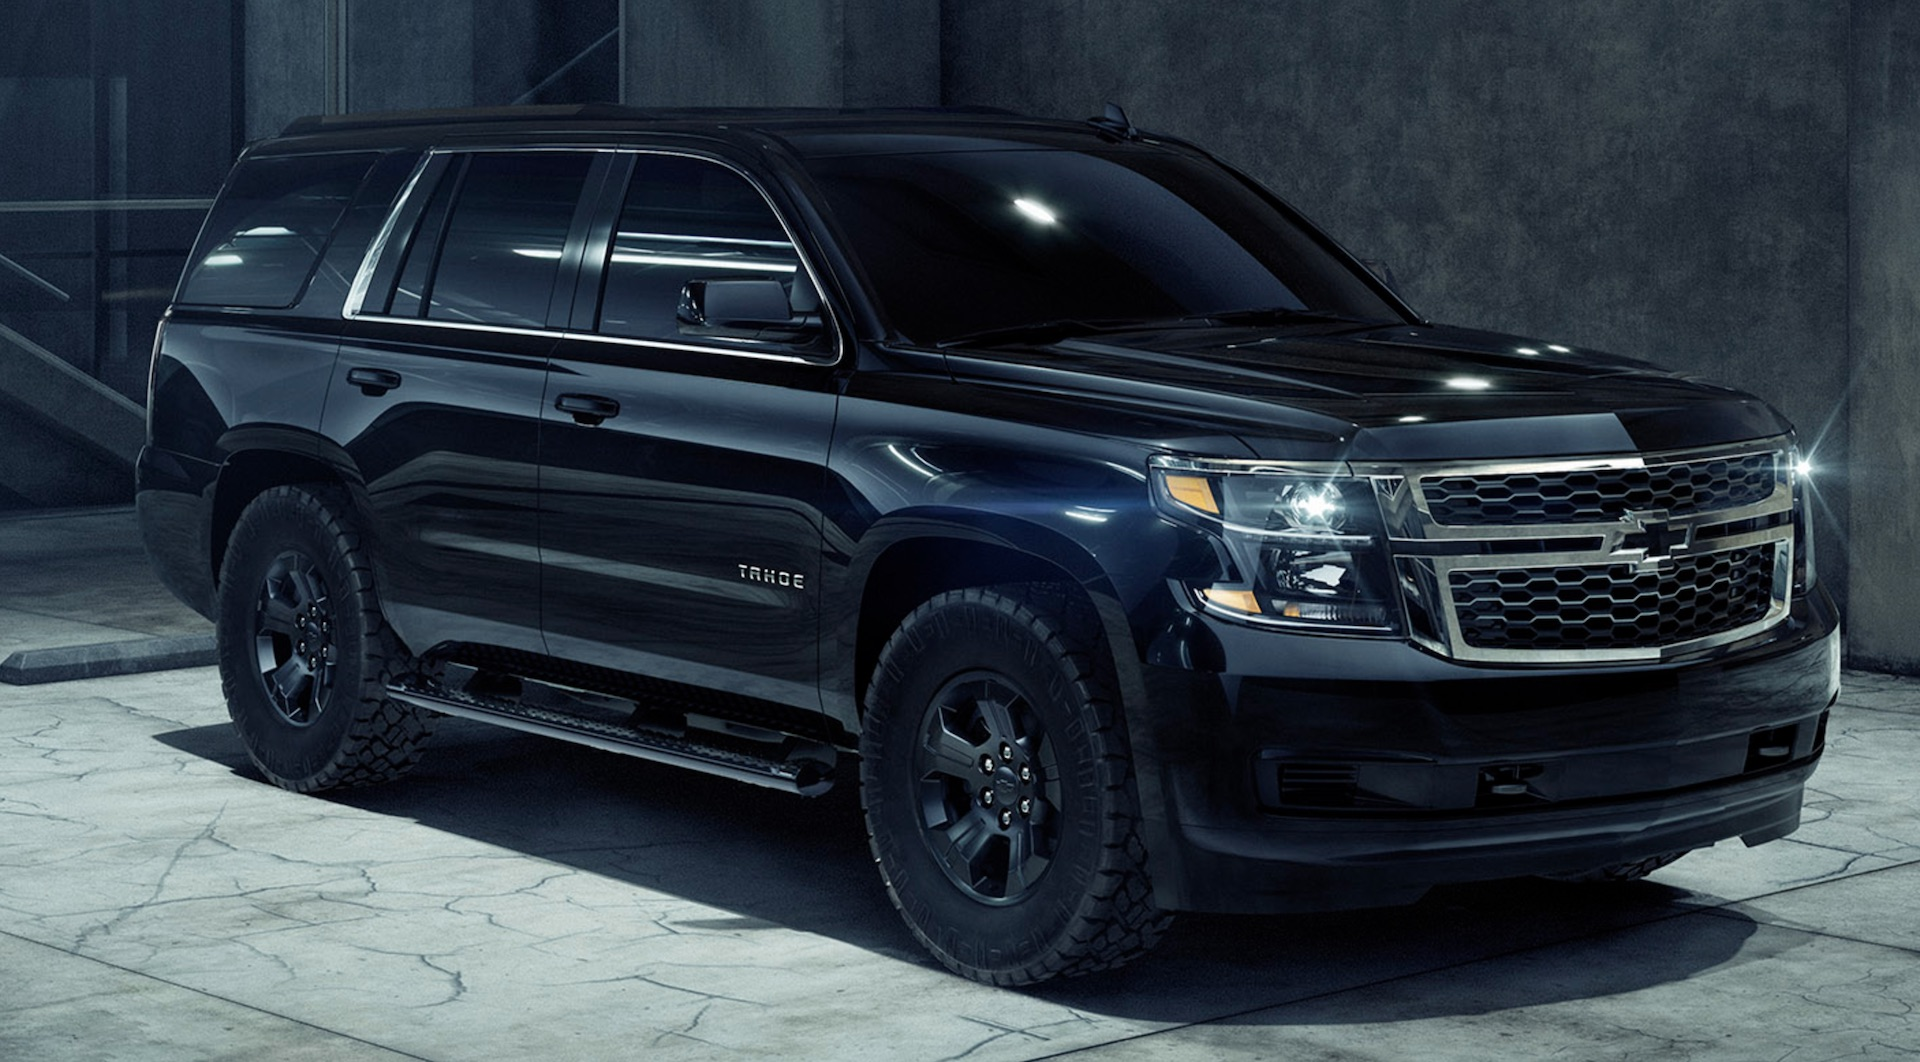 2018 Chevrolet Tahoe Custom Midnight Edition Just Say No To Chrome